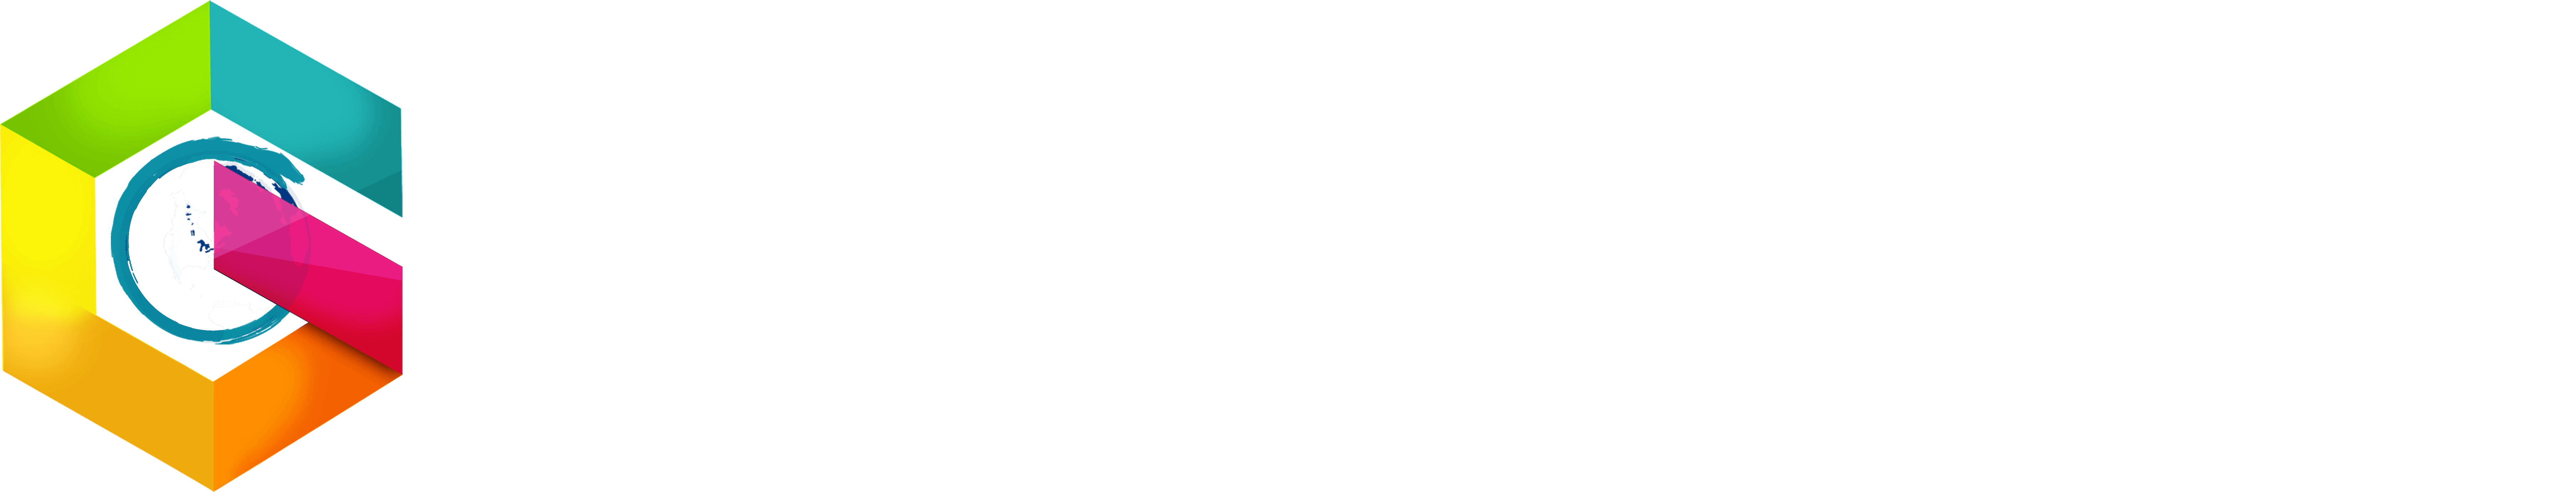 GLP Pharma Standards